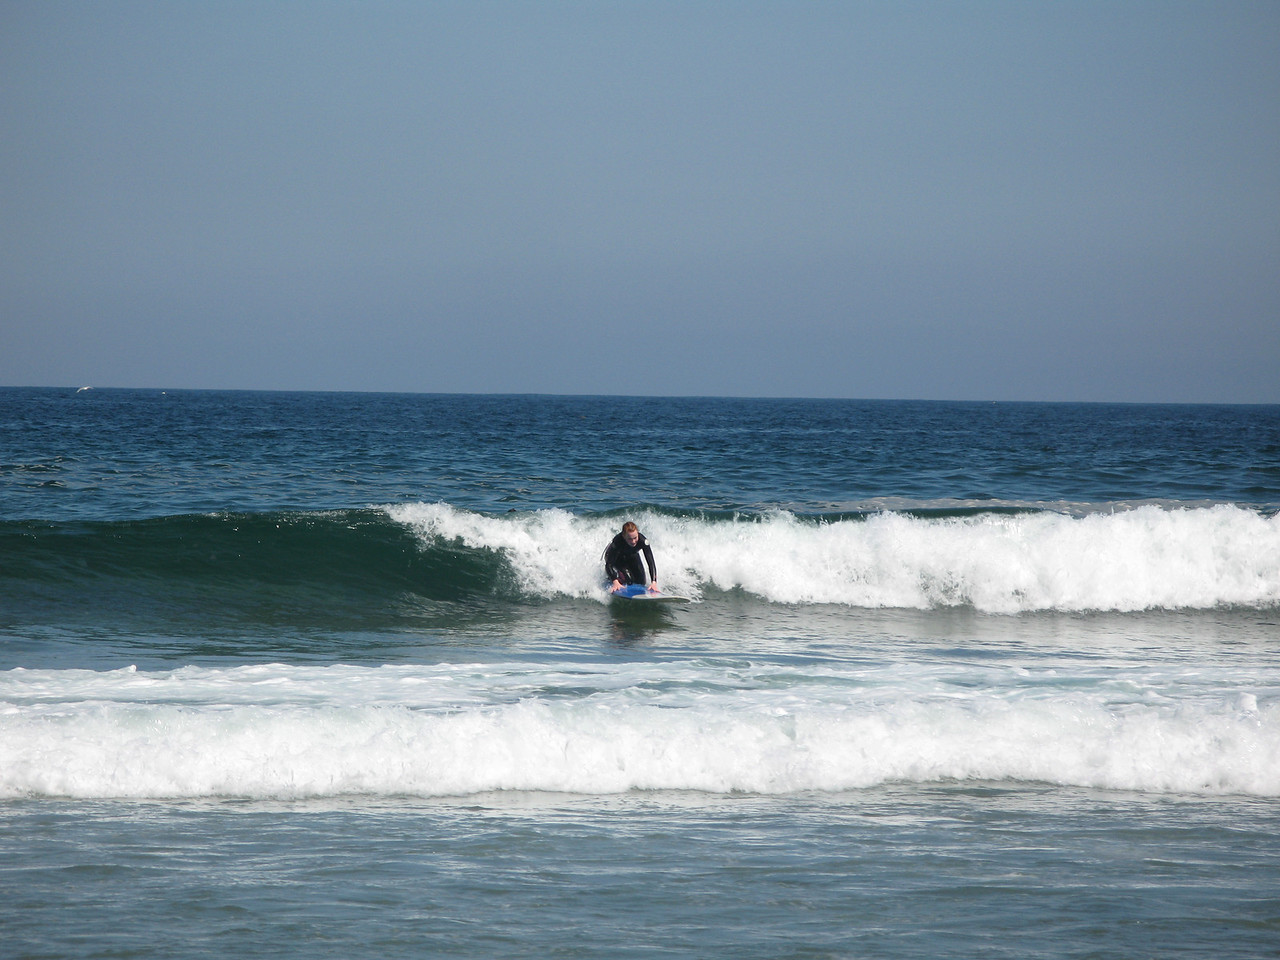 Vicky trying to catch another wave 1 of 4